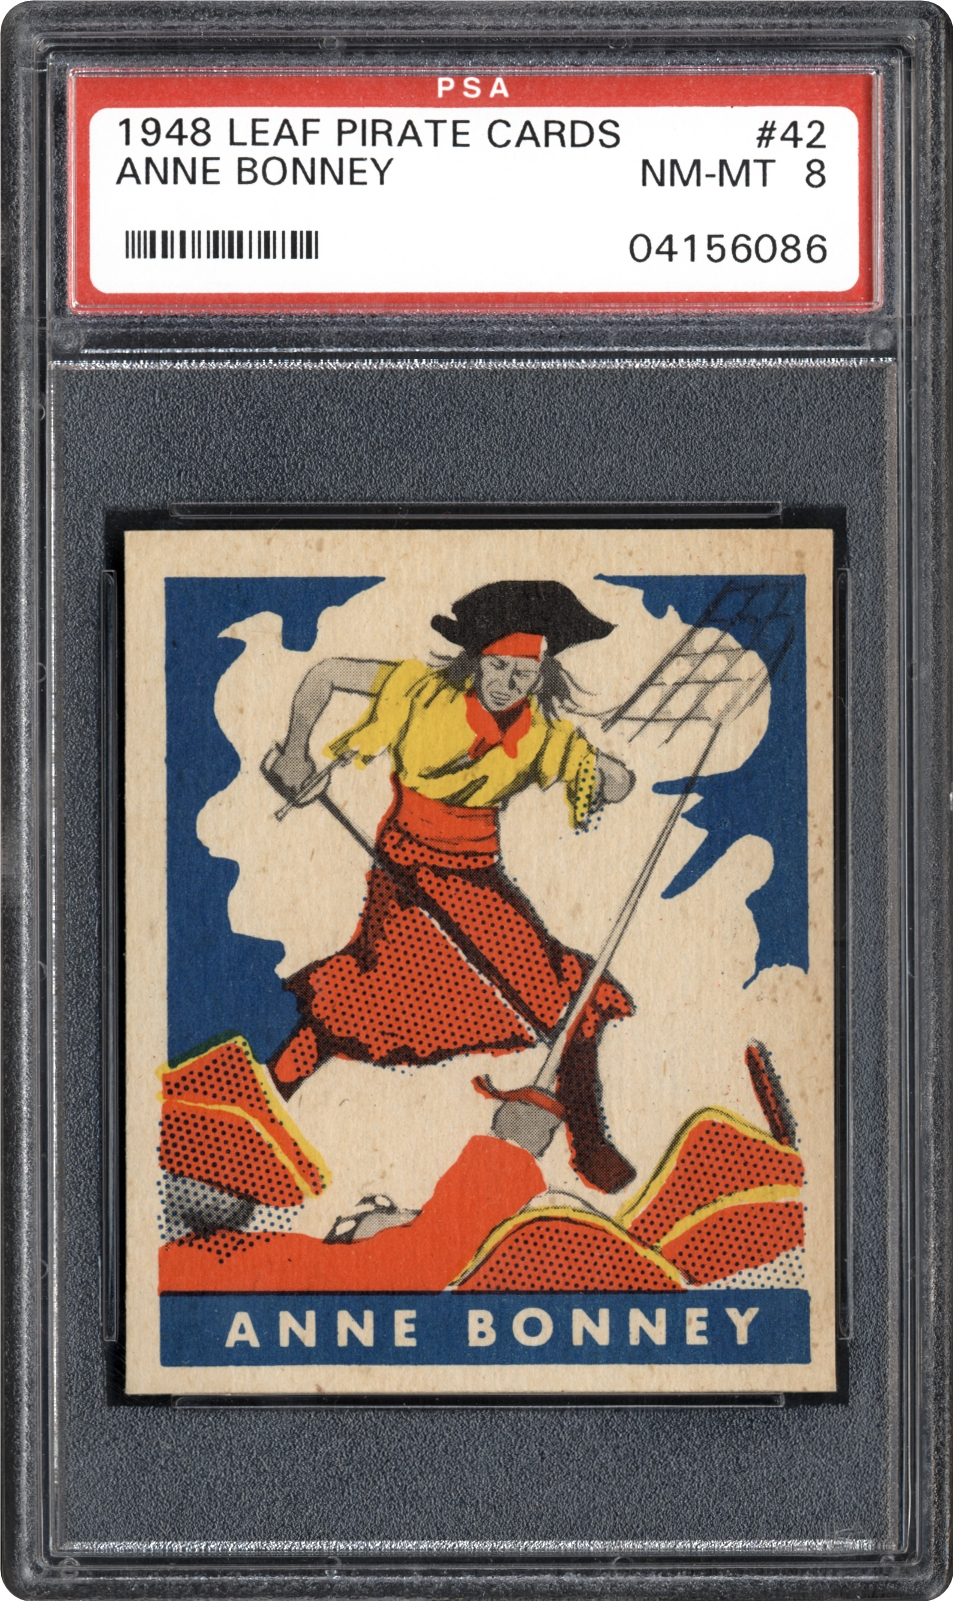 1948 Leaf Pirate Cards 42 Anne Bonney